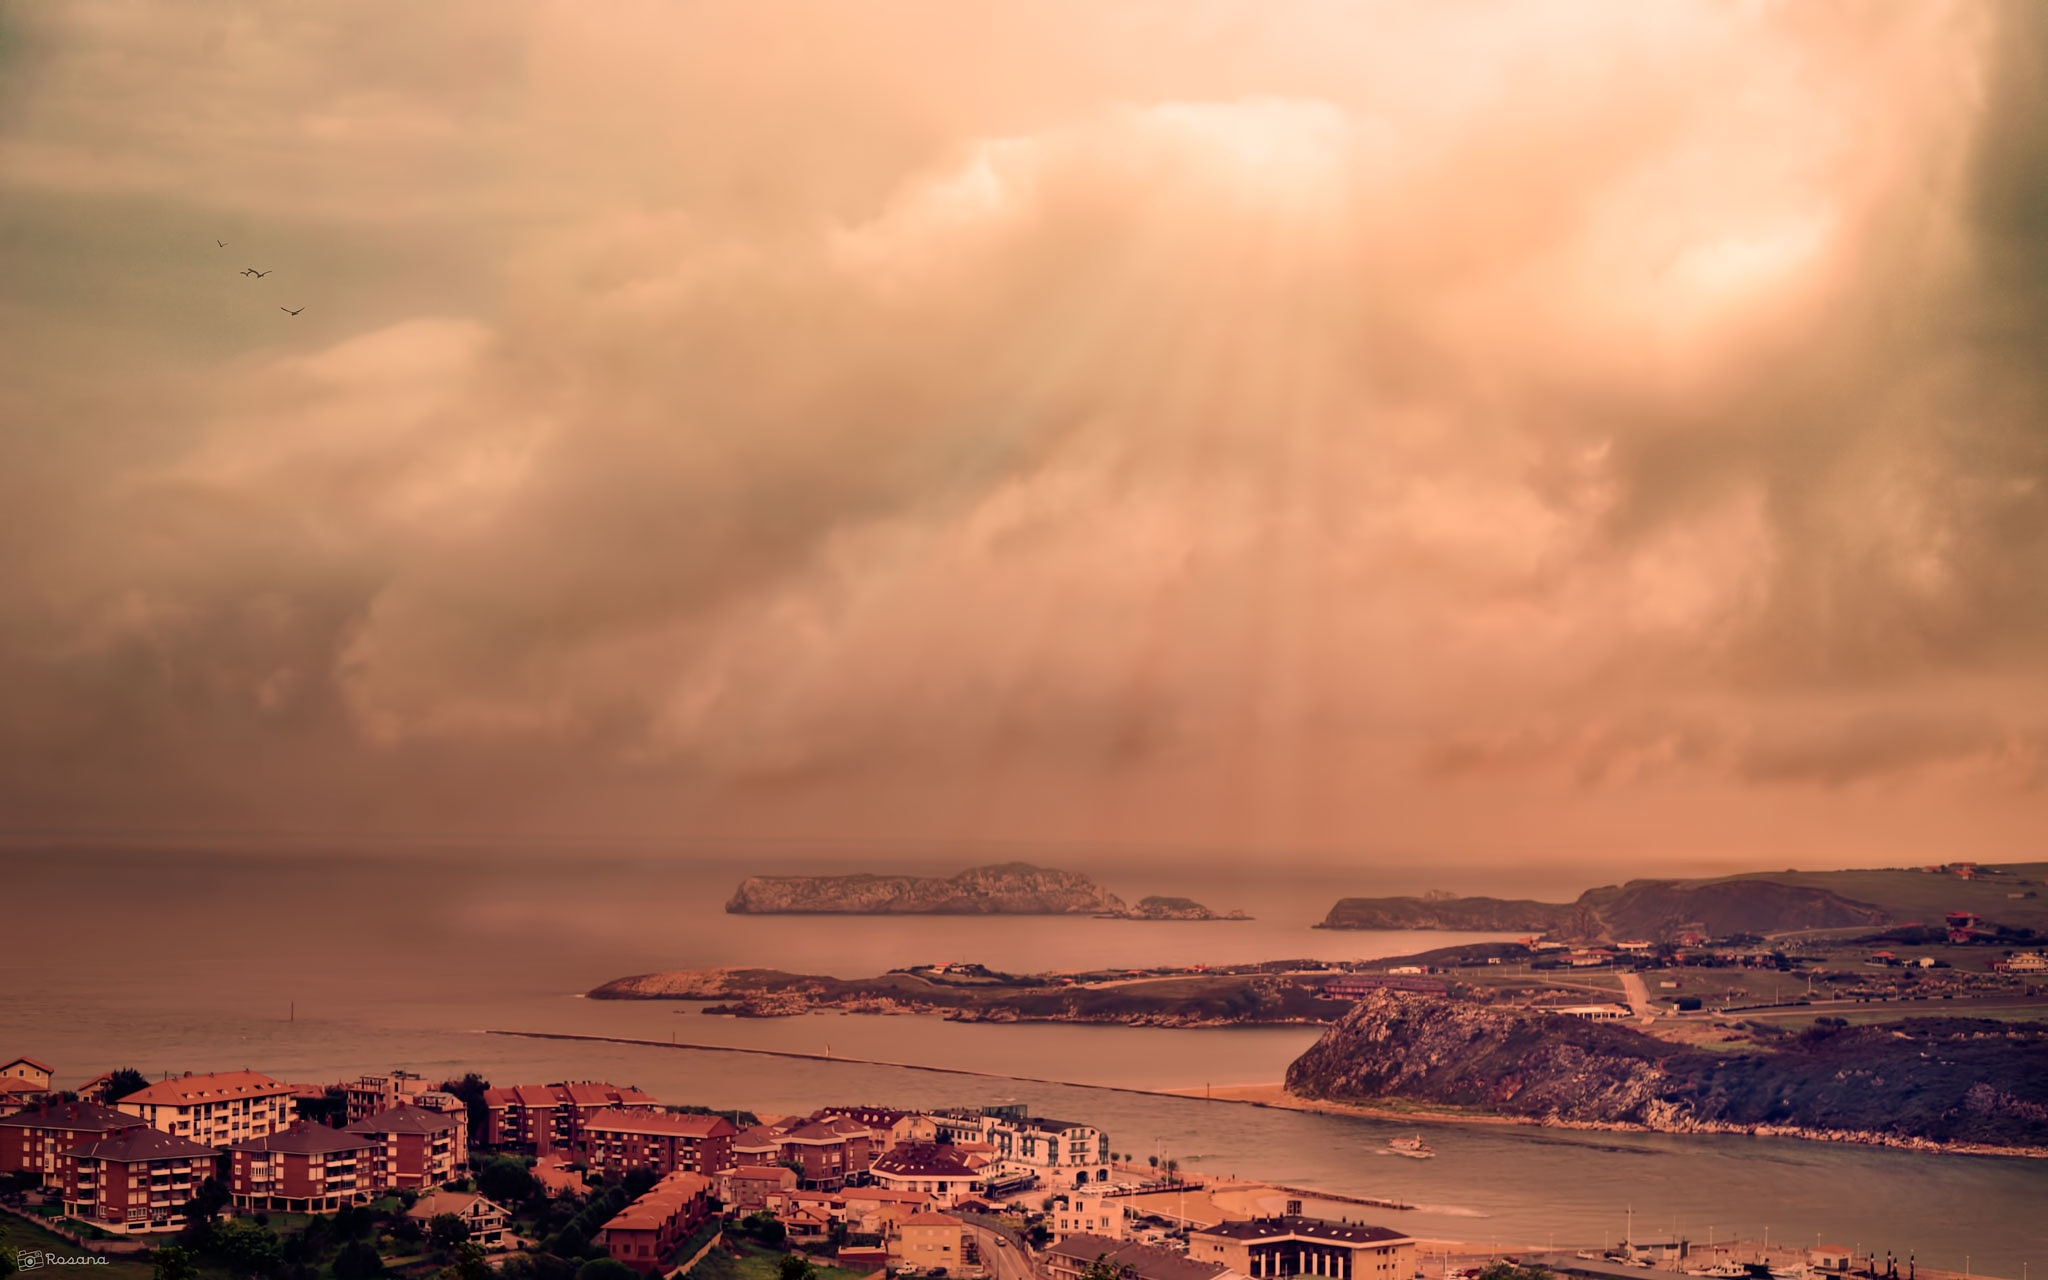 After the storm by Rosana